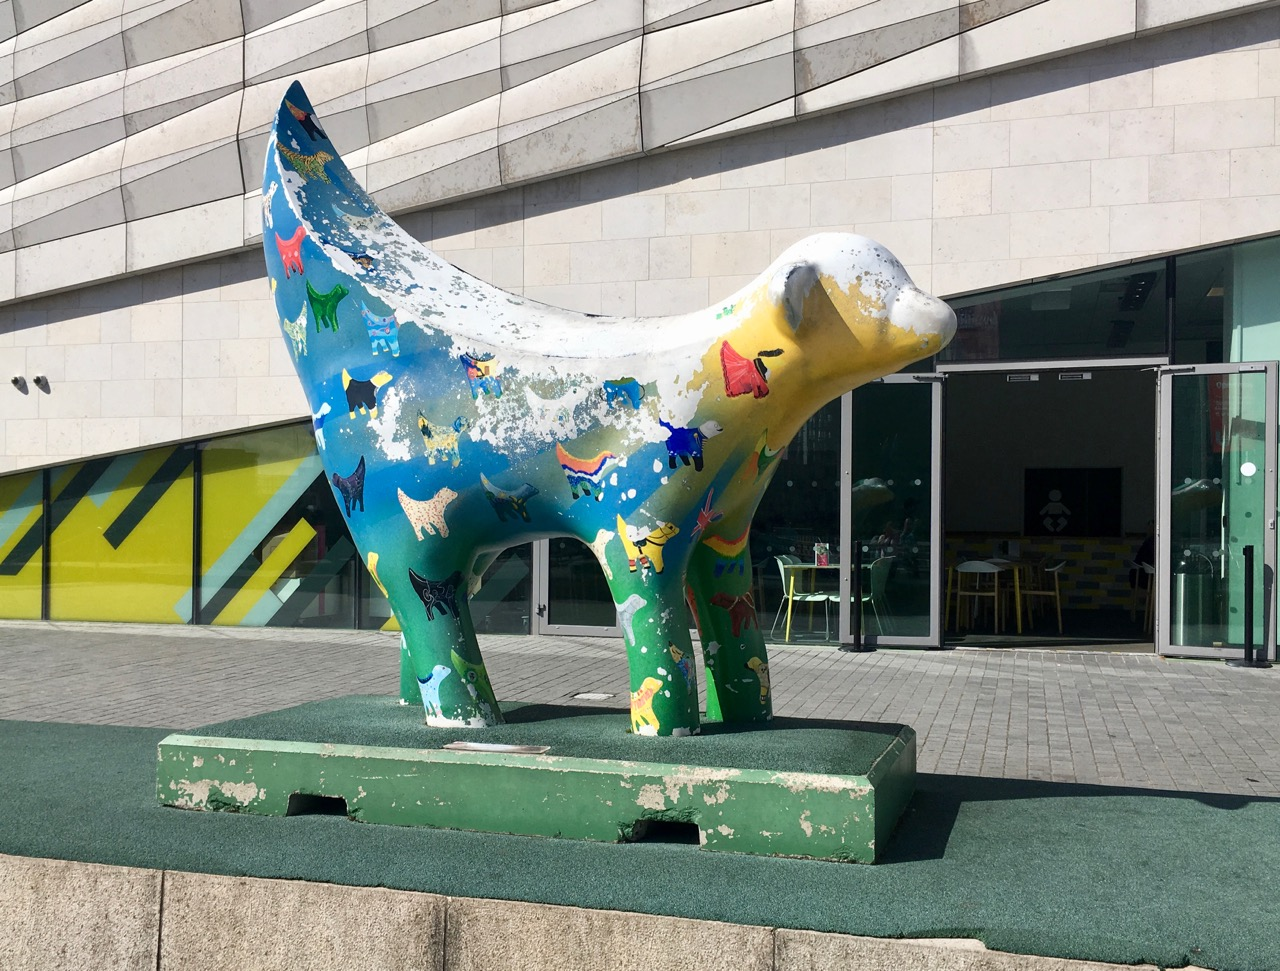 ANOTHER SUPERLAMBANANA OUTSIDE THE MUSEUM OF LIVERPOOL